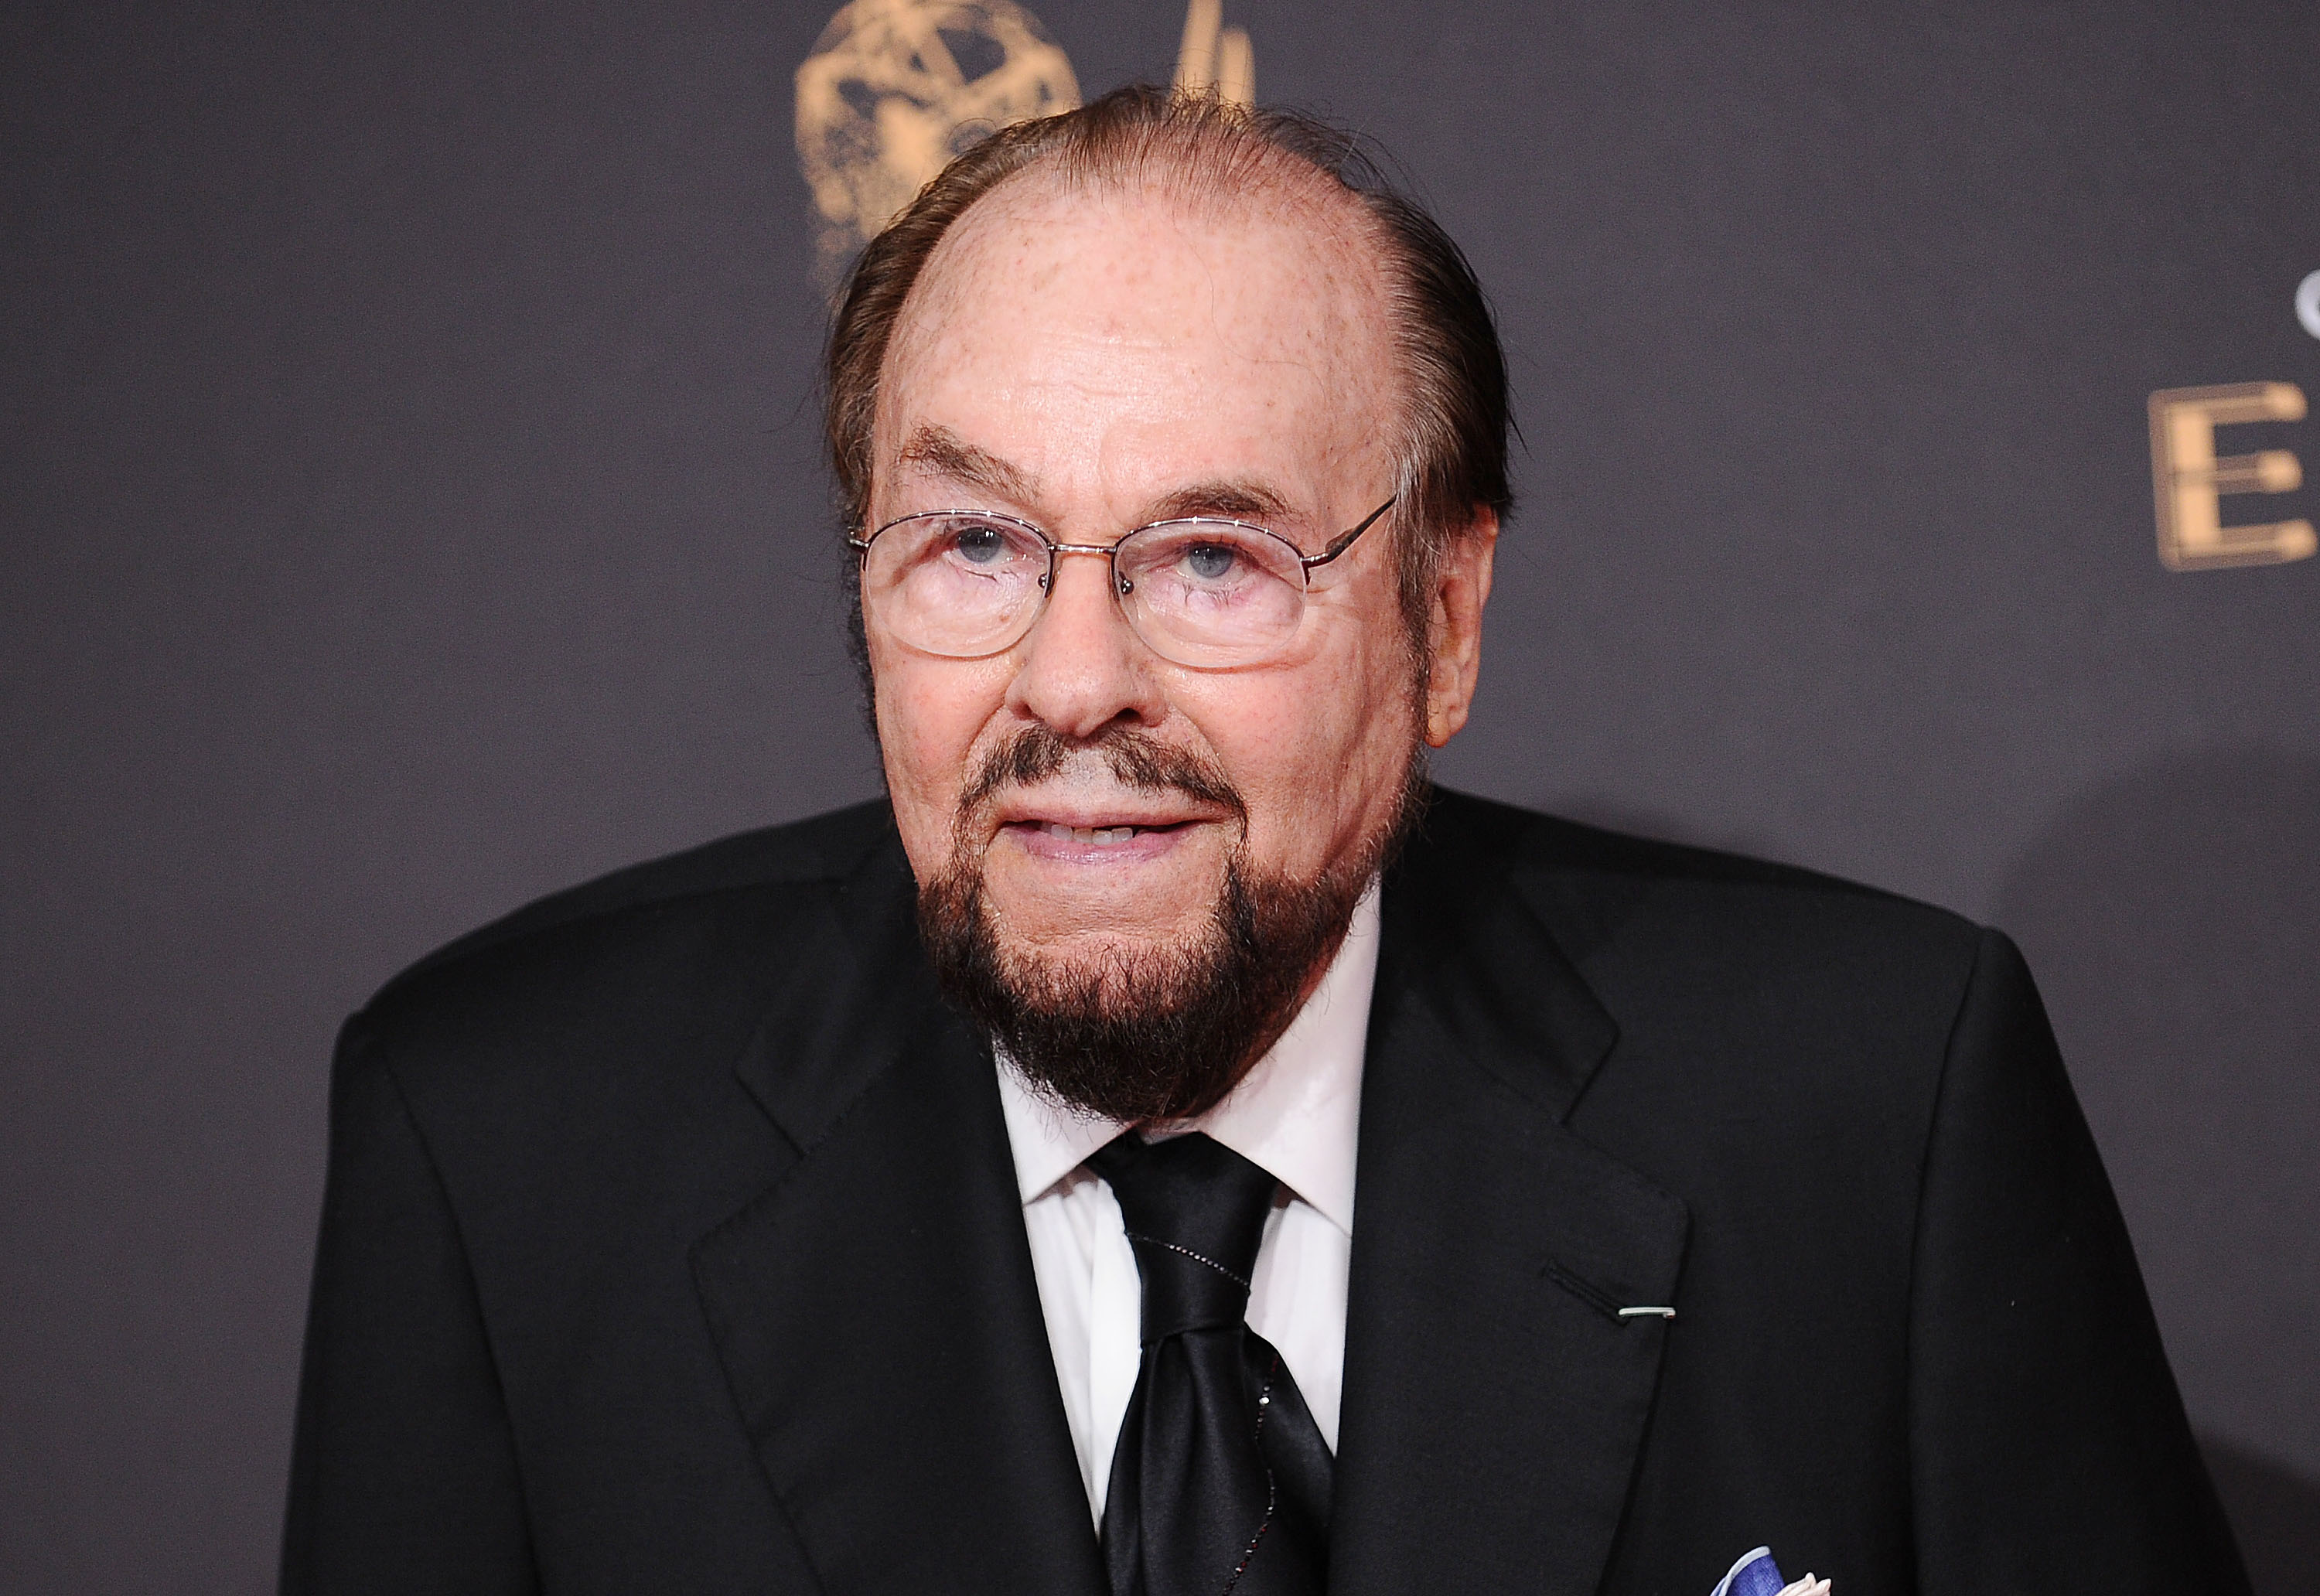 James Lipton at the Creative Arts Emmy Awards on September 9, 2017, in Los Angeles, California | Photo: Getty Images